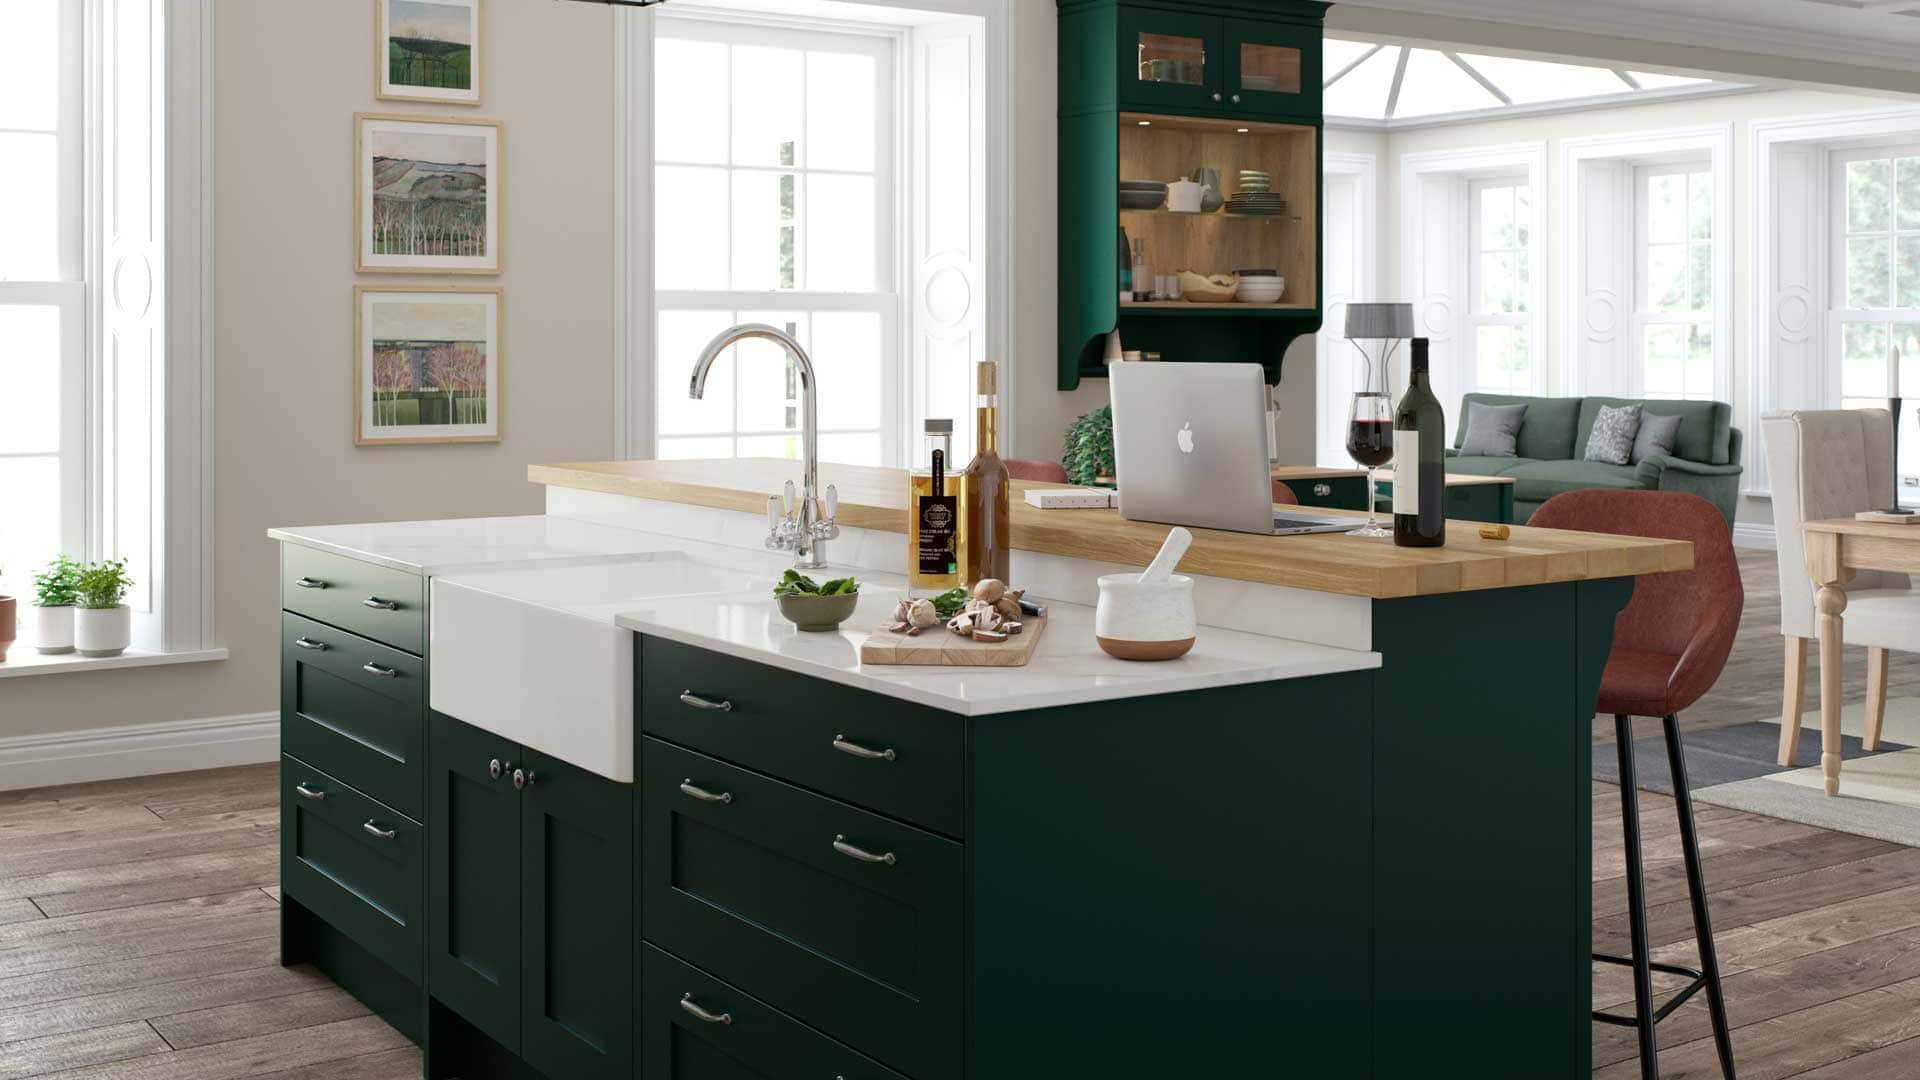 Masterclass Kitchens Spring 2019 New & Noteworthy Releases